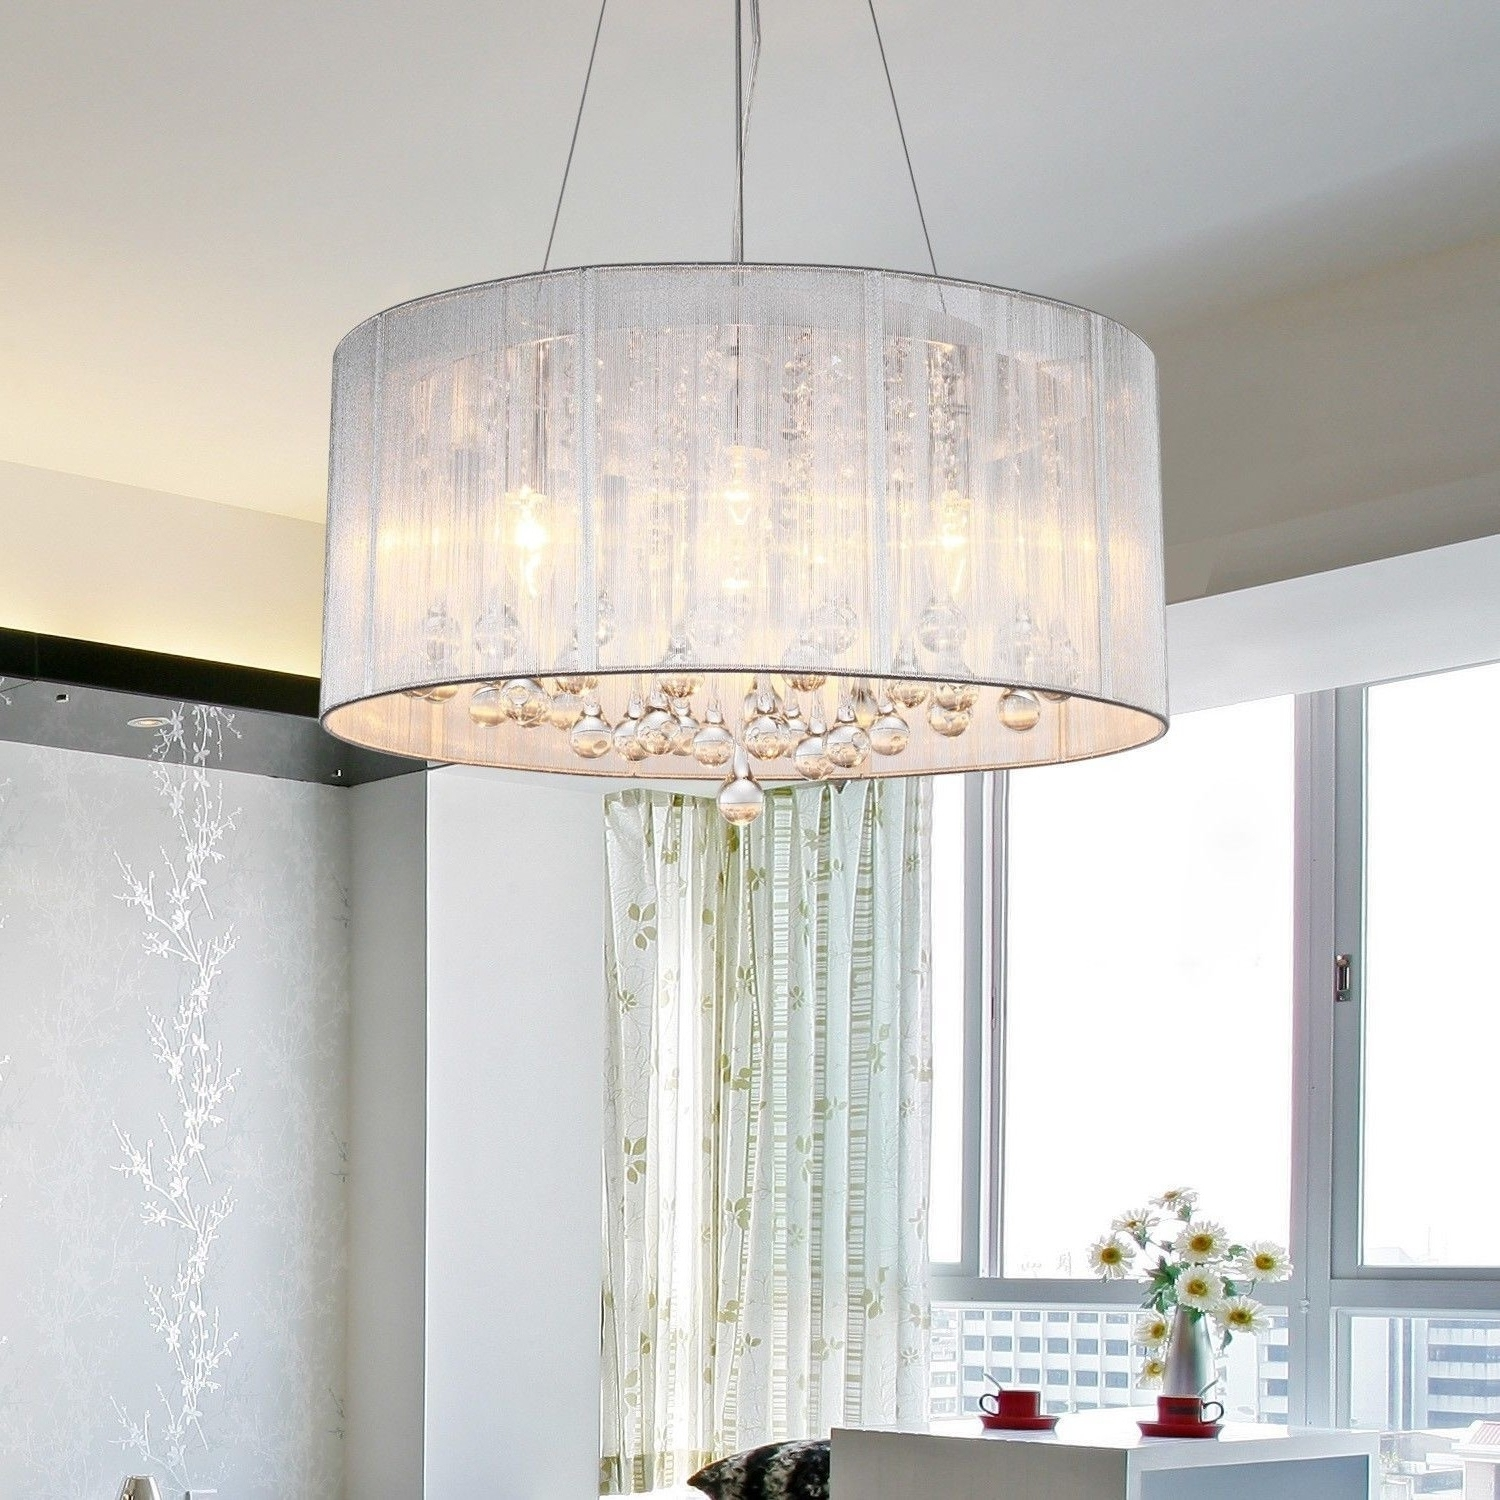 Crystal Lamp Shades For Chandeliers : Lamp World Throughout Most Current Chandeliers With Lamp Shades (View 10 of 20)